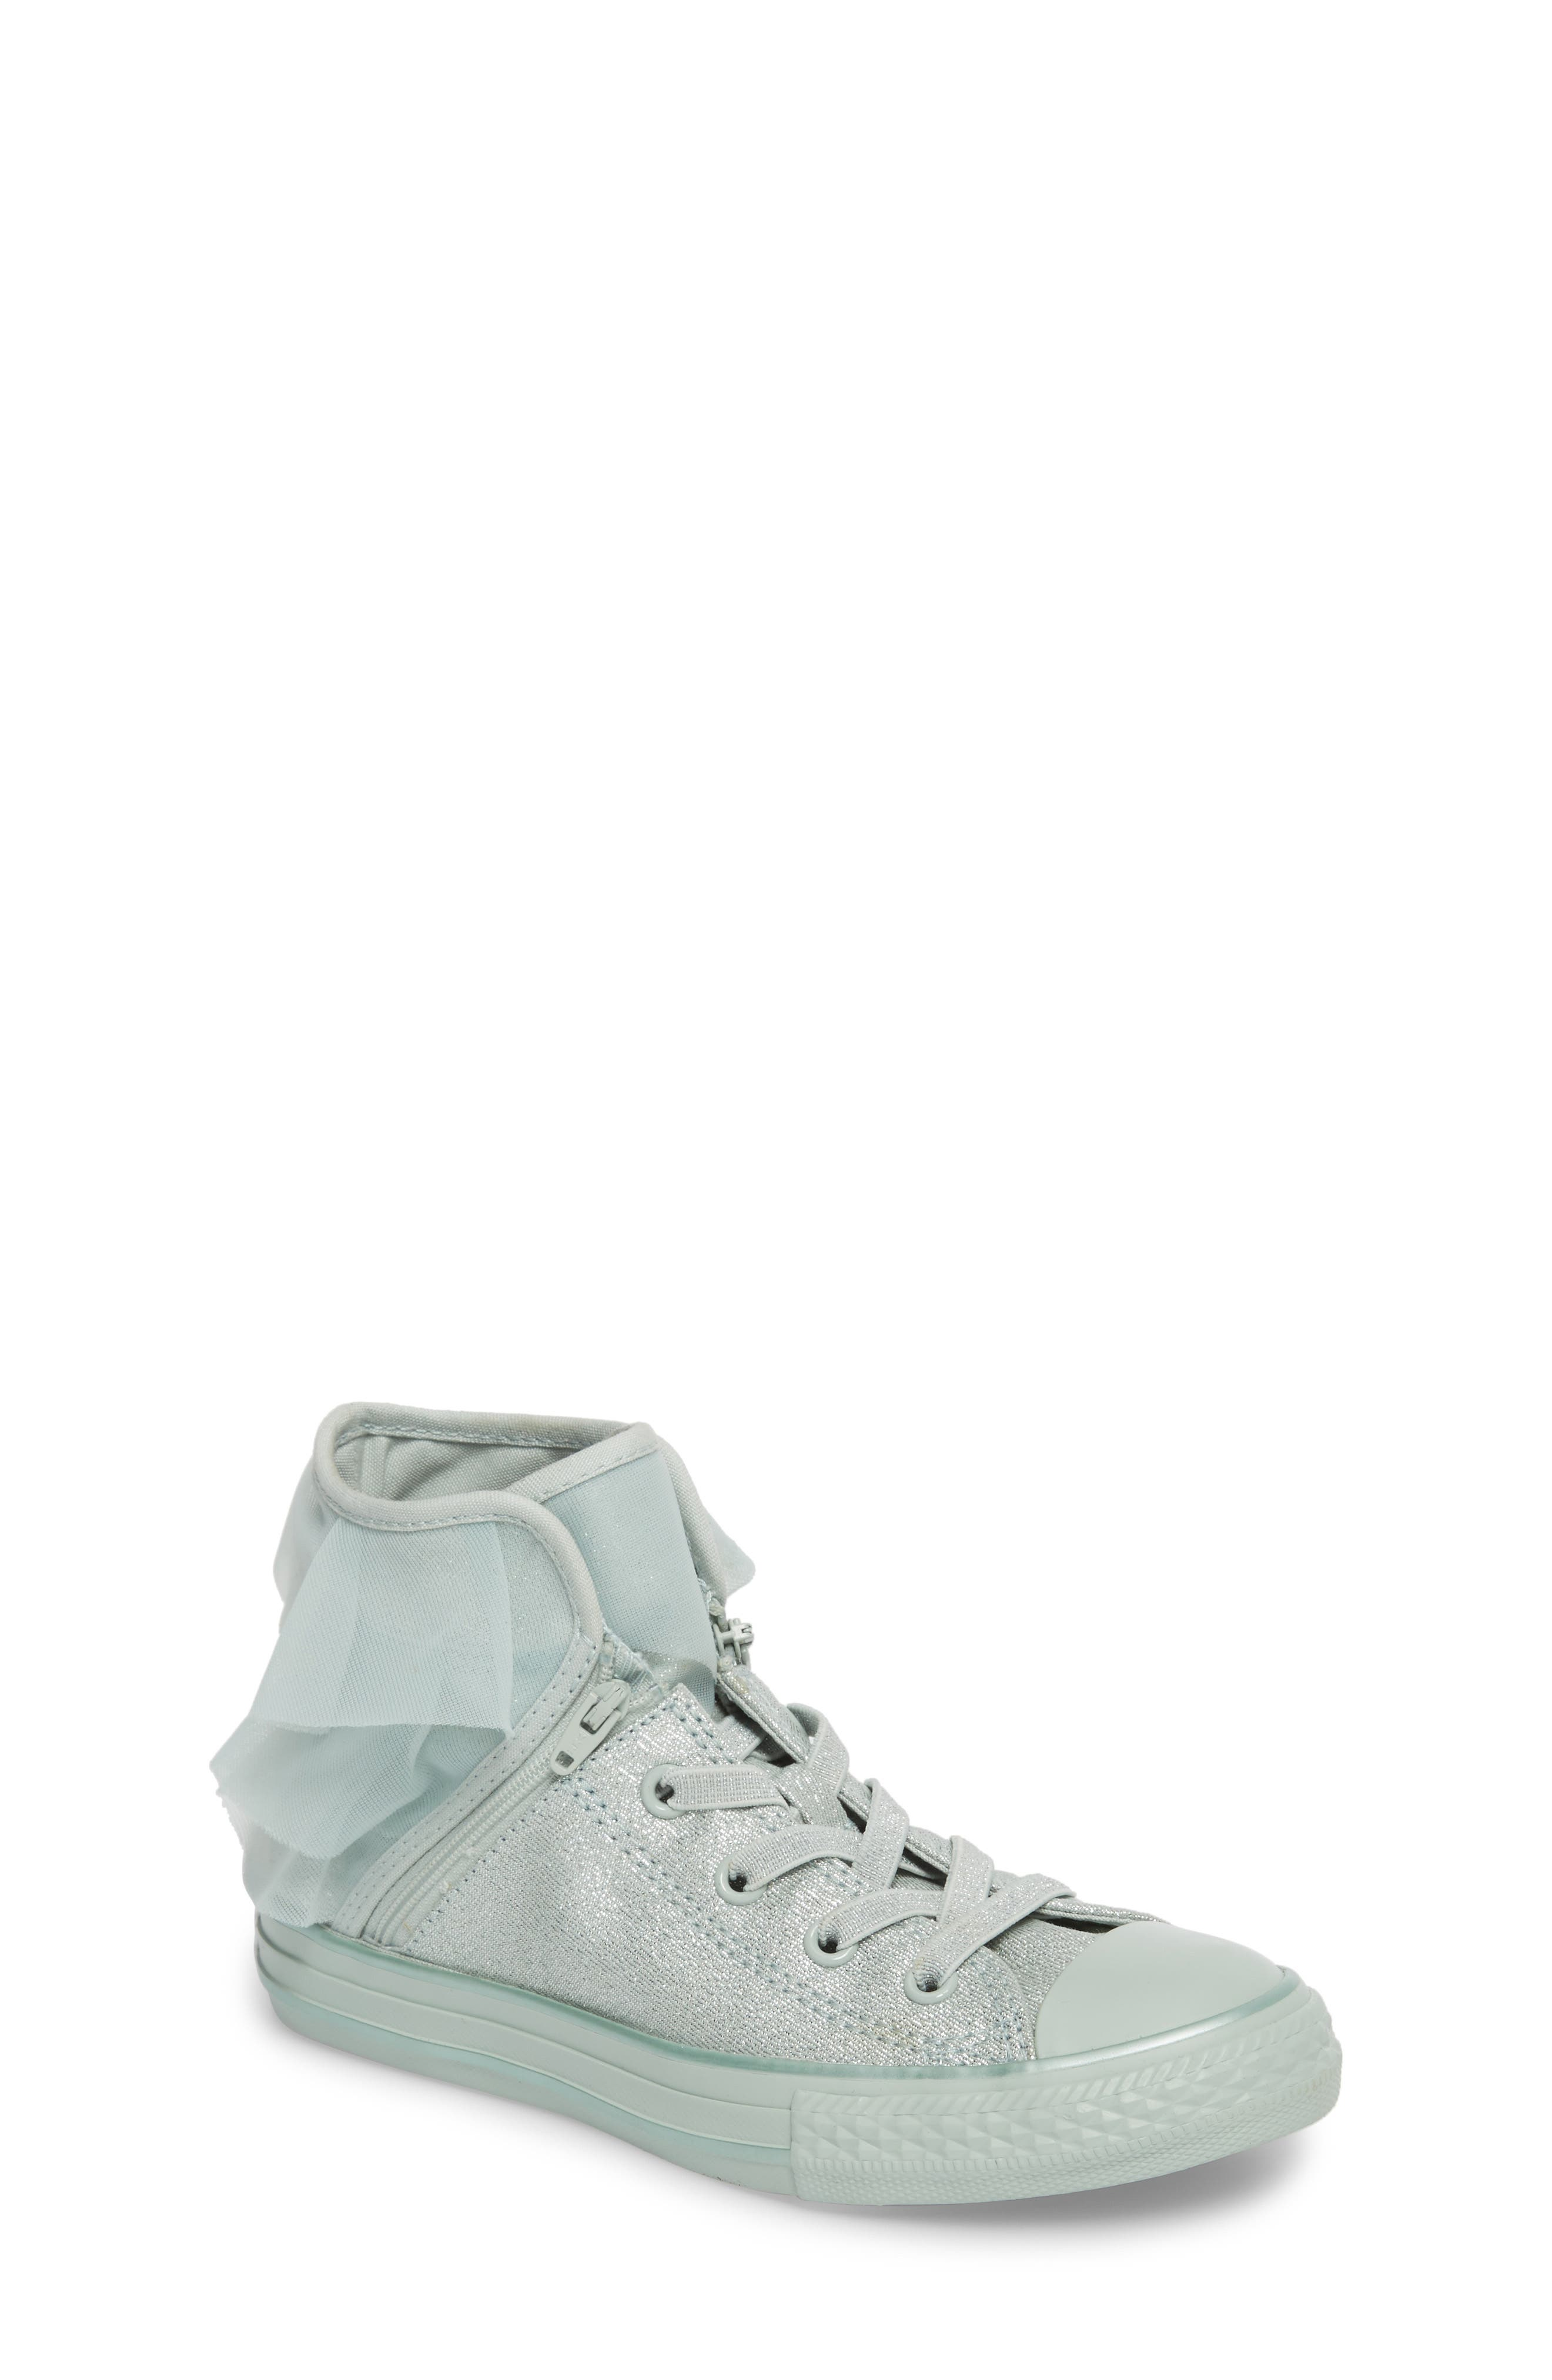 All Star<sup>®</sup> Mono Shine Party High Top Sneaker,                         Main,                         color,